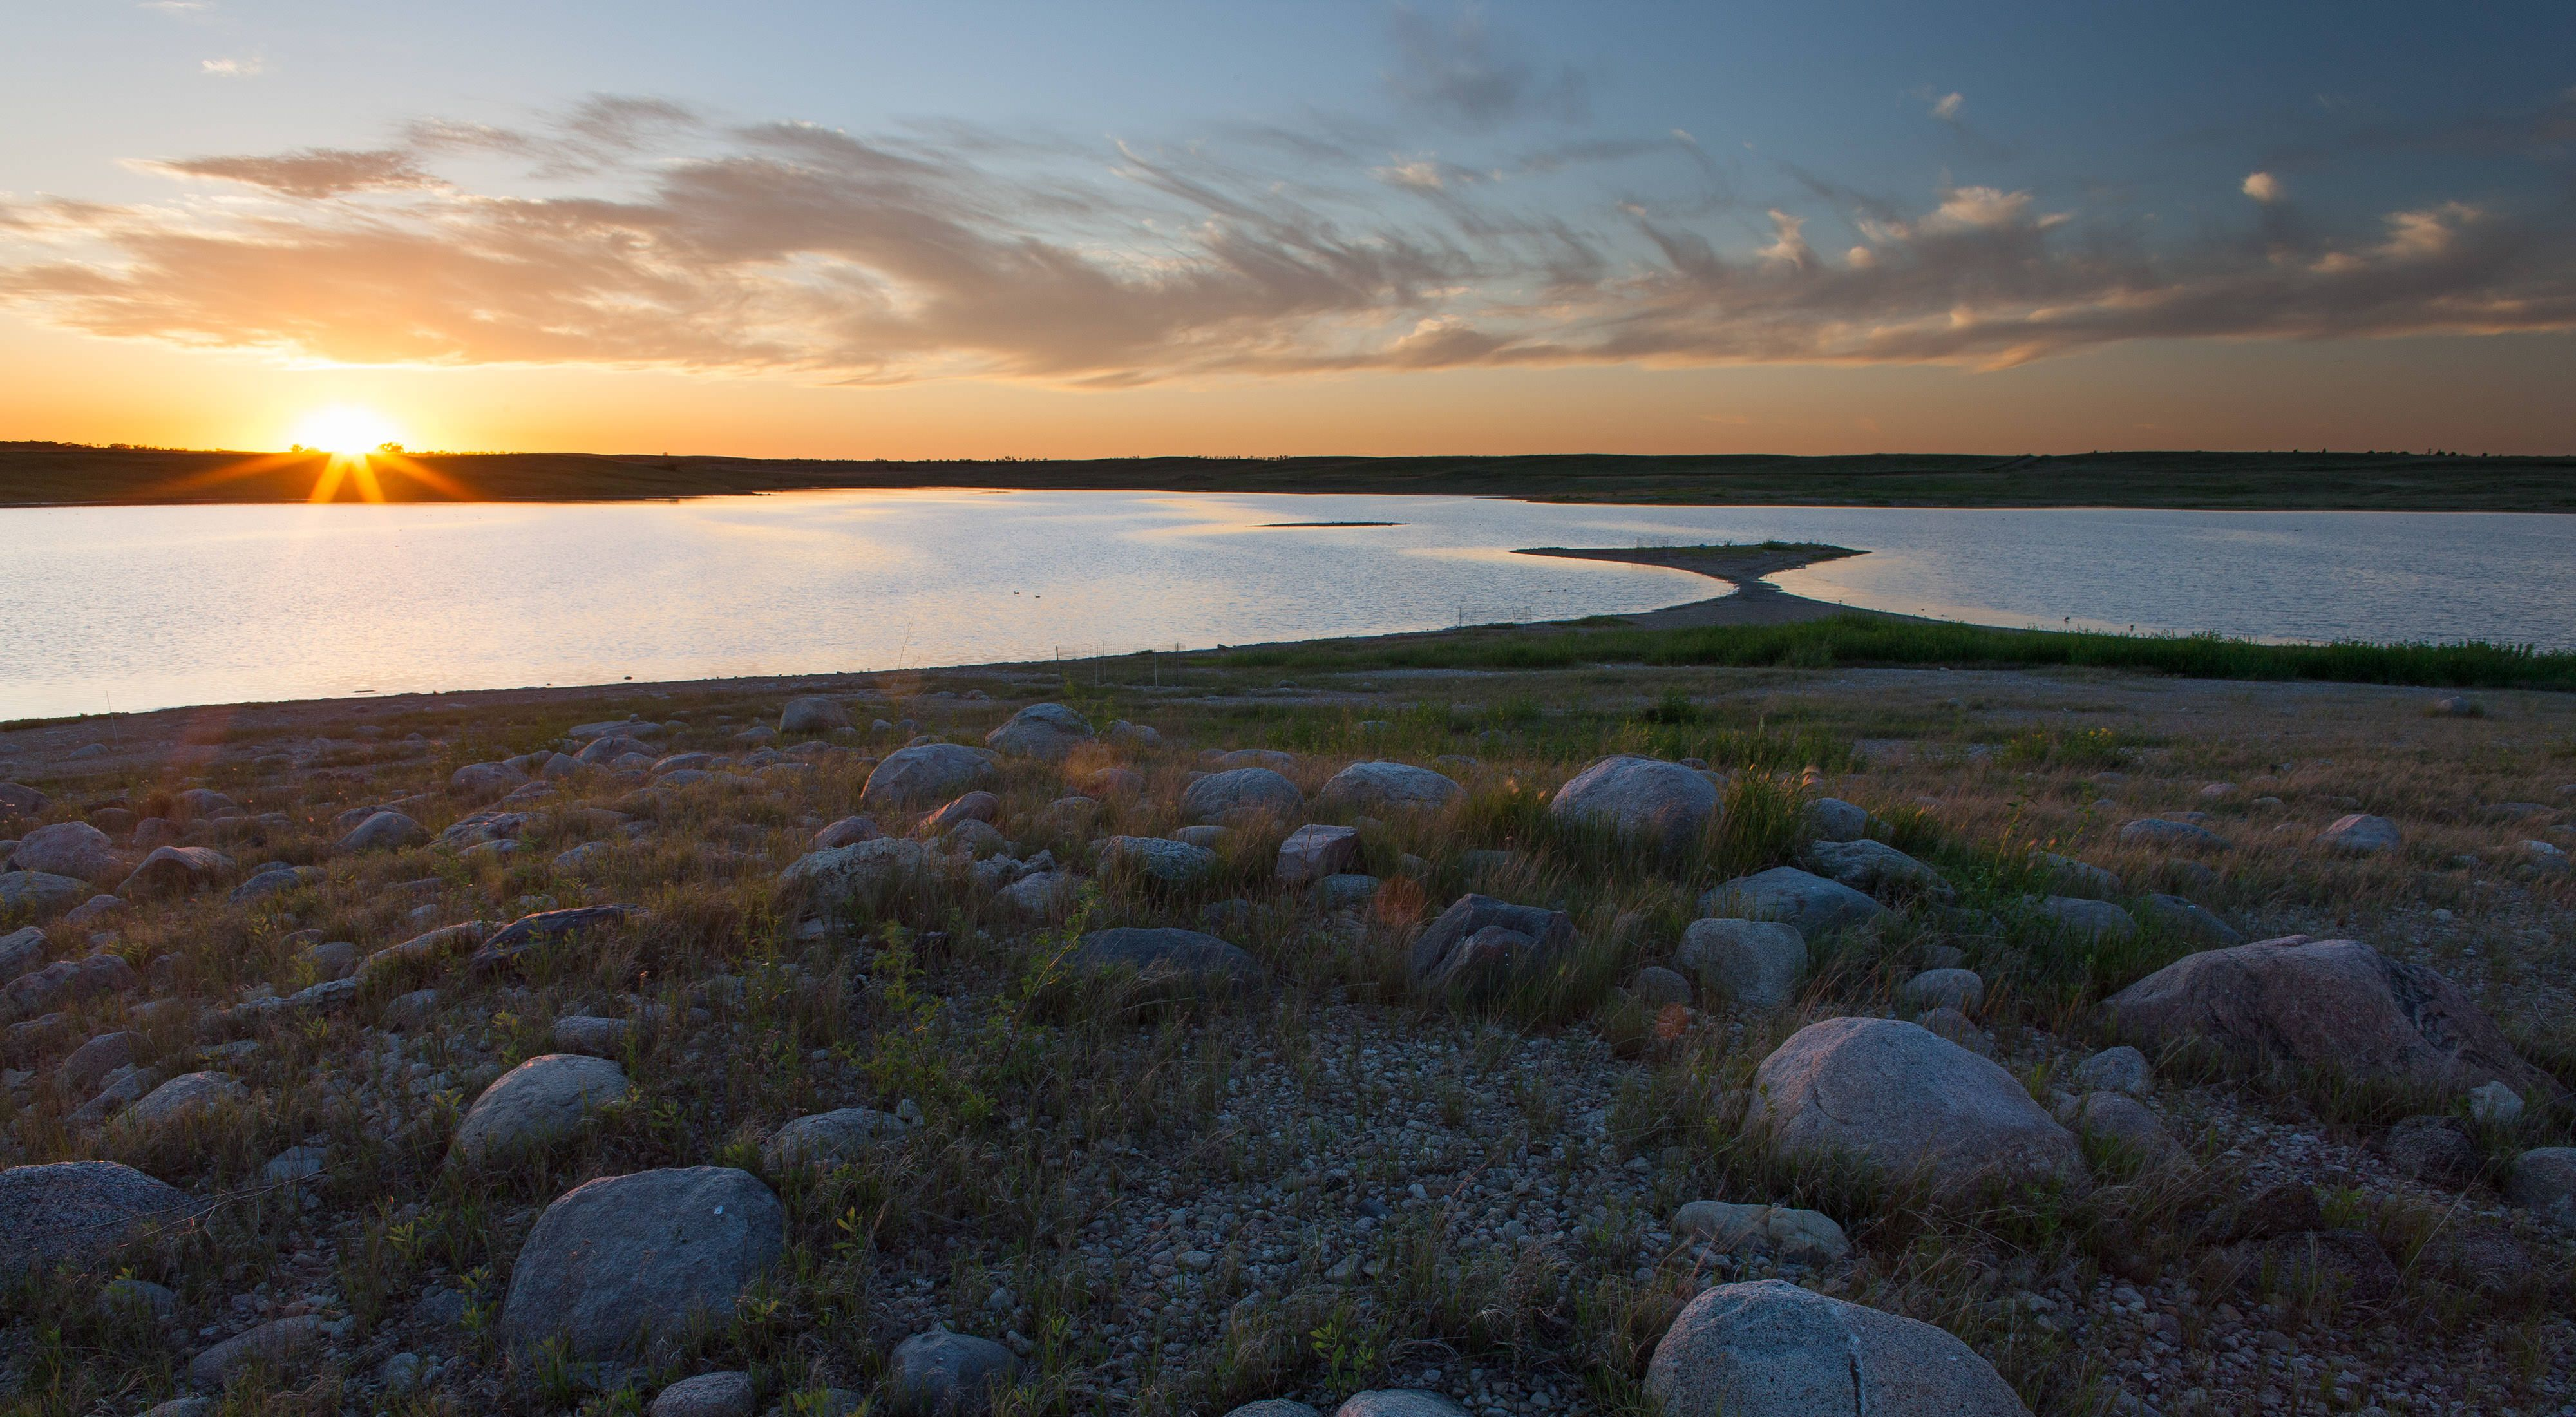 two alkali lakes at sunset.